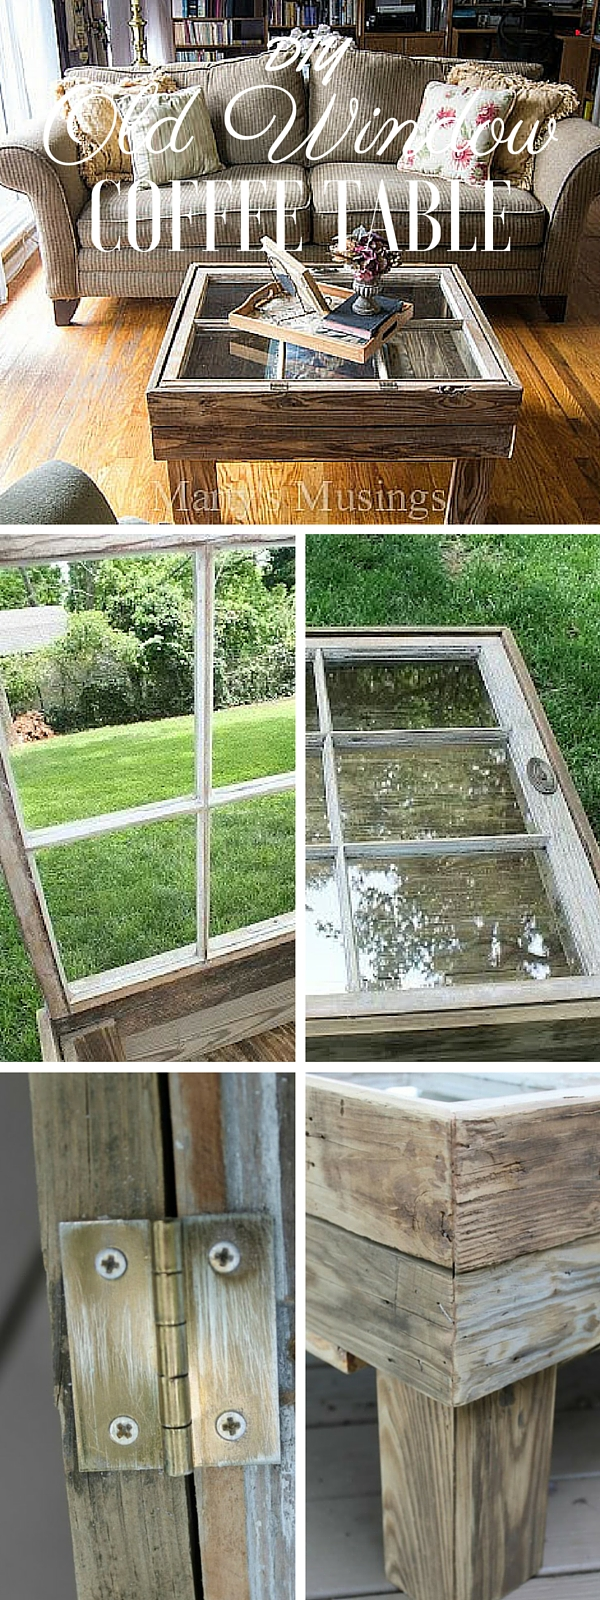 How to make a DIY Repurposed Window Coffee Table